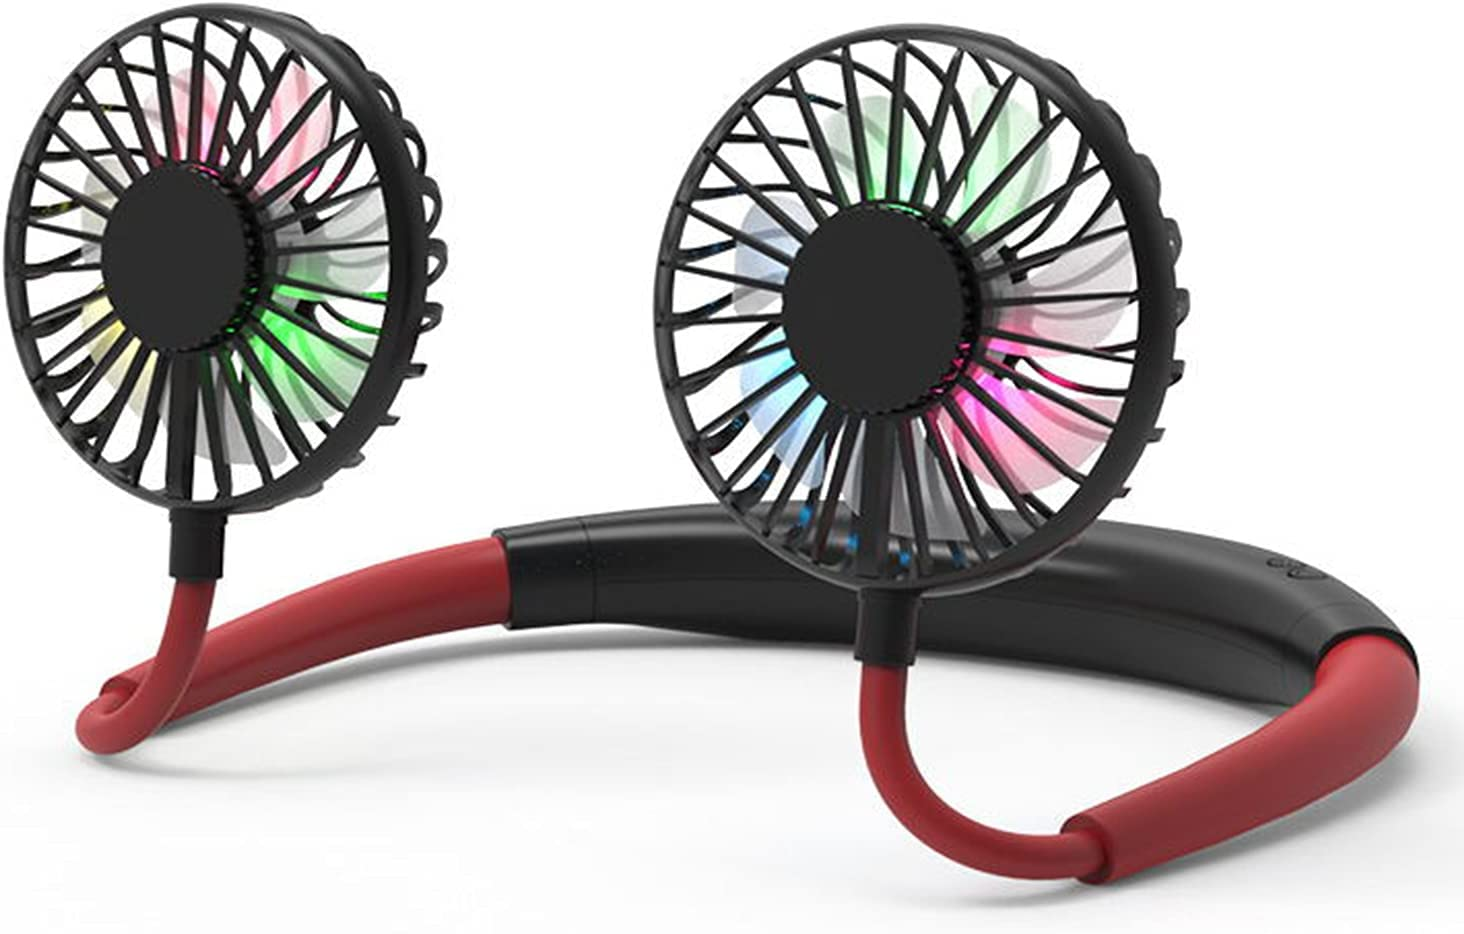 JYTDP USB Portable Fan Cold Free All stores San Antonio Mall are sold Hands Rech Hanging Neck